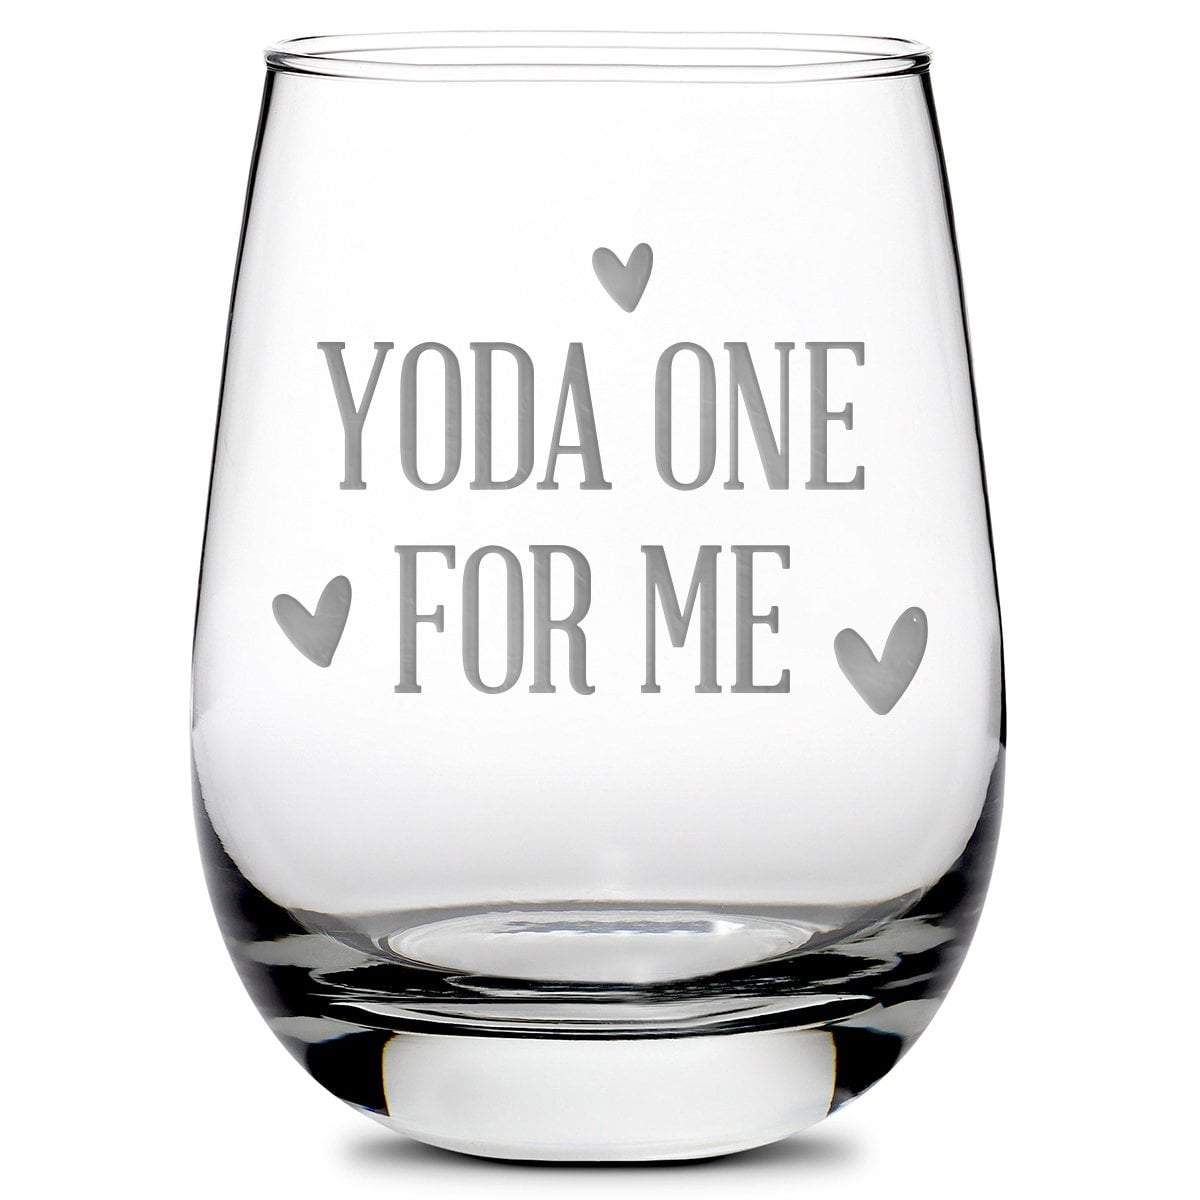 Premium Stemless Wine Glass, Mandalorian, Baby Yoda One For Me, 16oz by Integrity Bottles